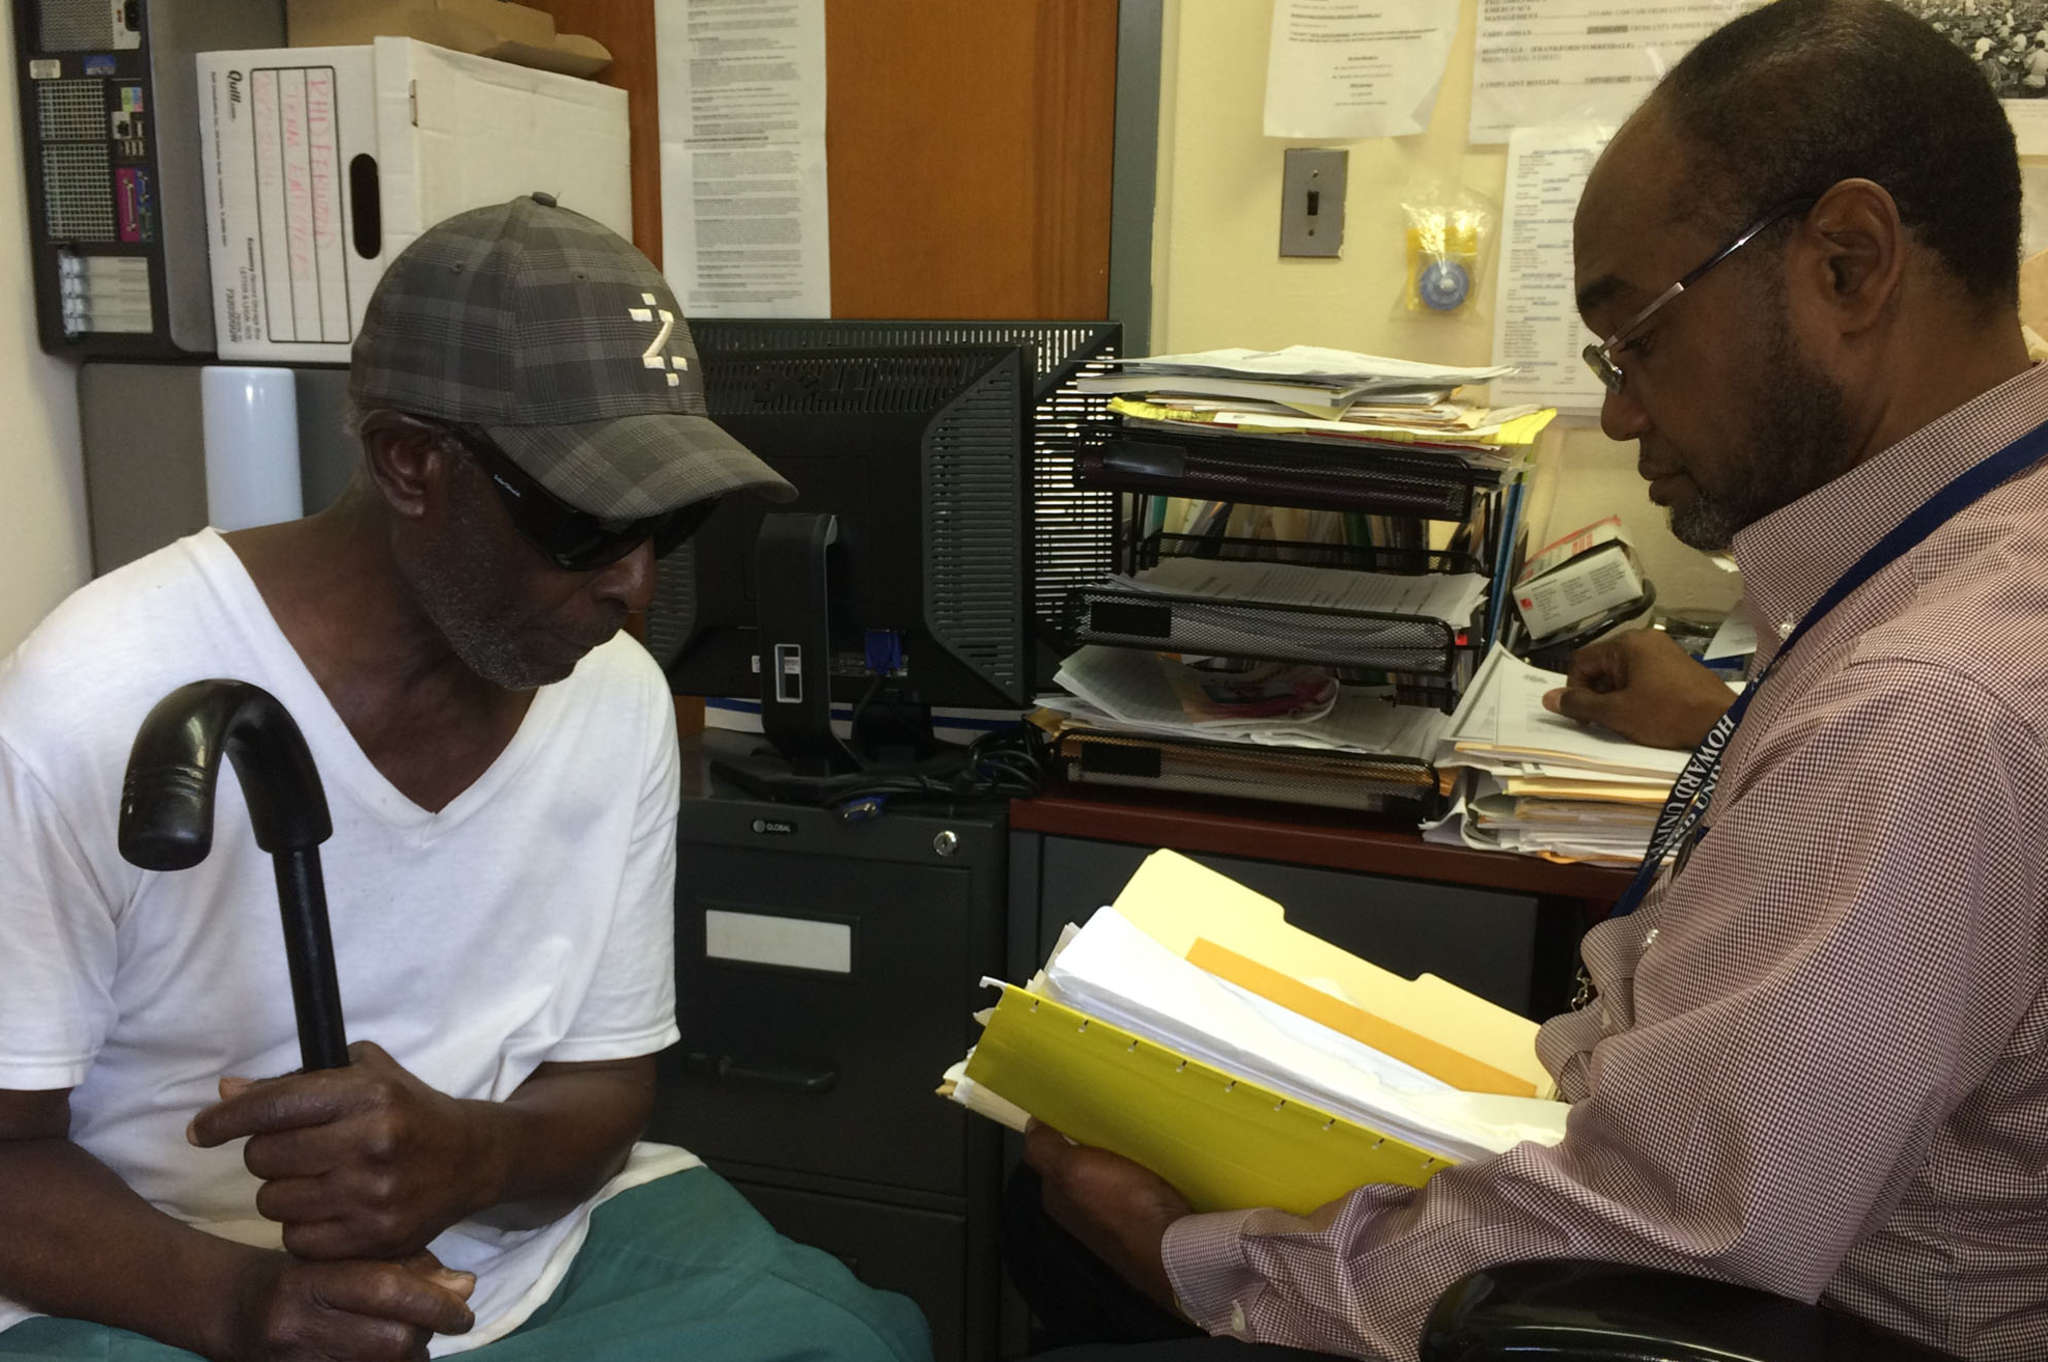 Julius Jackson (right), director of the Fernwood emergency-housing shelter, reviews Samuel Foster´s file. STU BYKOFSKY/DAILY NEWS STAFF